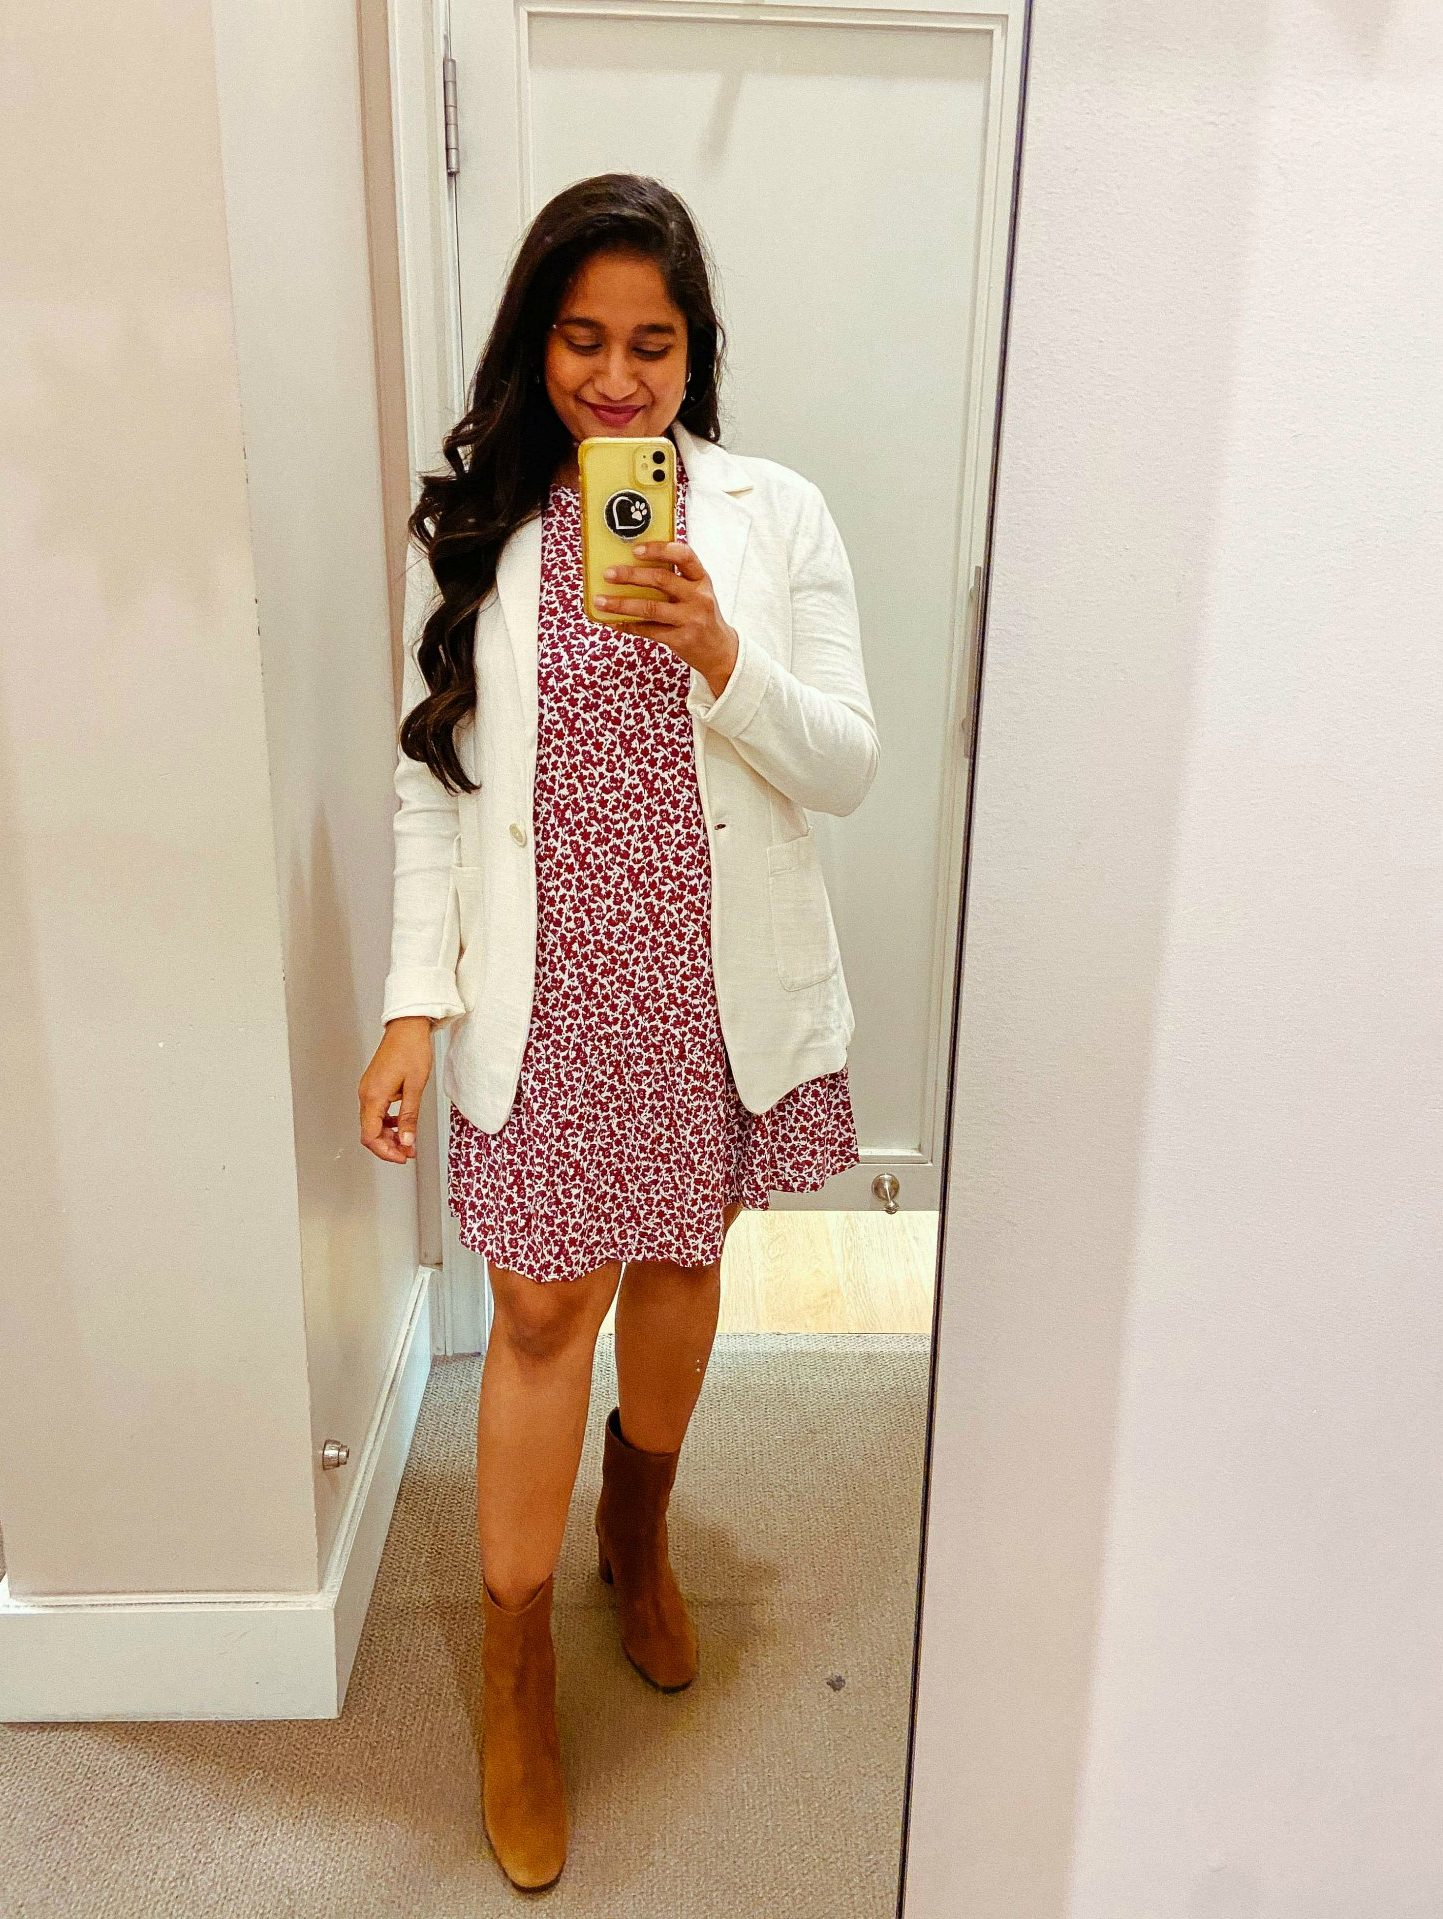 Fall WFH Outfits- wearing Floral Flounce Swing Dress, Soft Knit Blazer,J.Crew Suede ankle boots | Fall Clothing by popular Maryland modest fashion blog, Dreaming Loud: image of a woman wearing a Loft Floral Flounce Swing Dress, Soft Knit Blazer, and J.Crew Suede ankle boots.